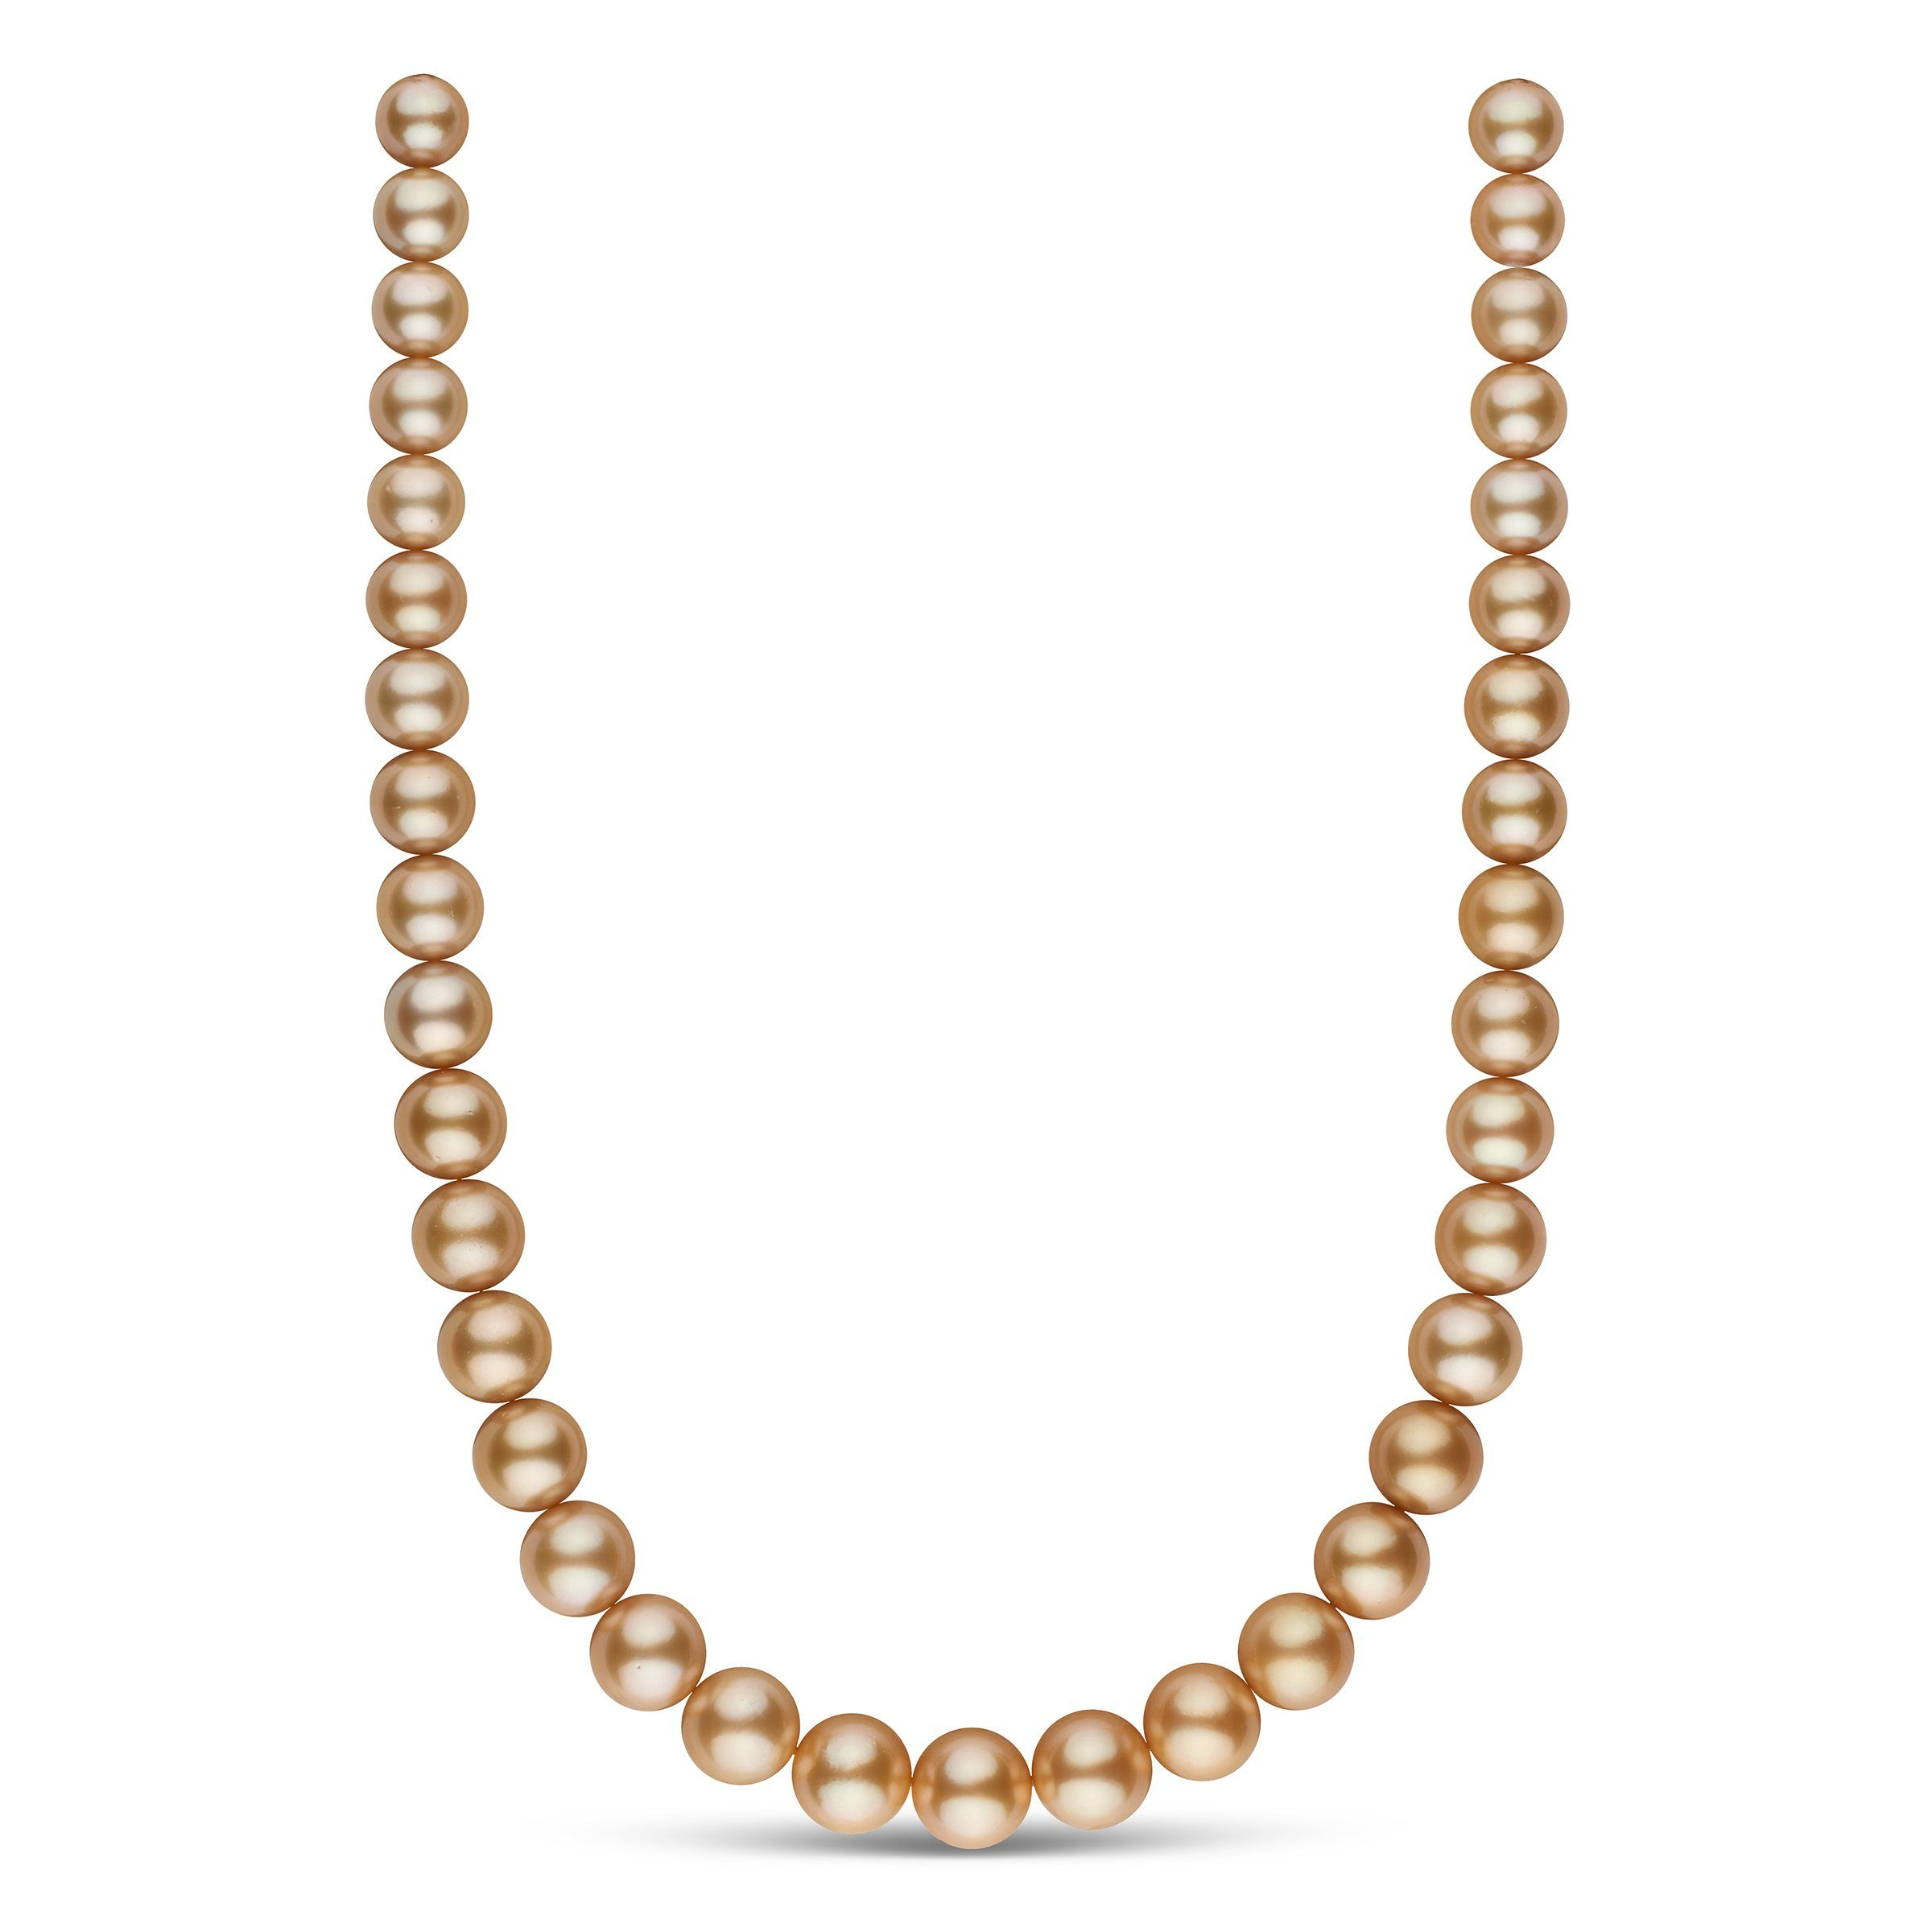 The Dreamgirls Golden South Sea Pearl Necklace